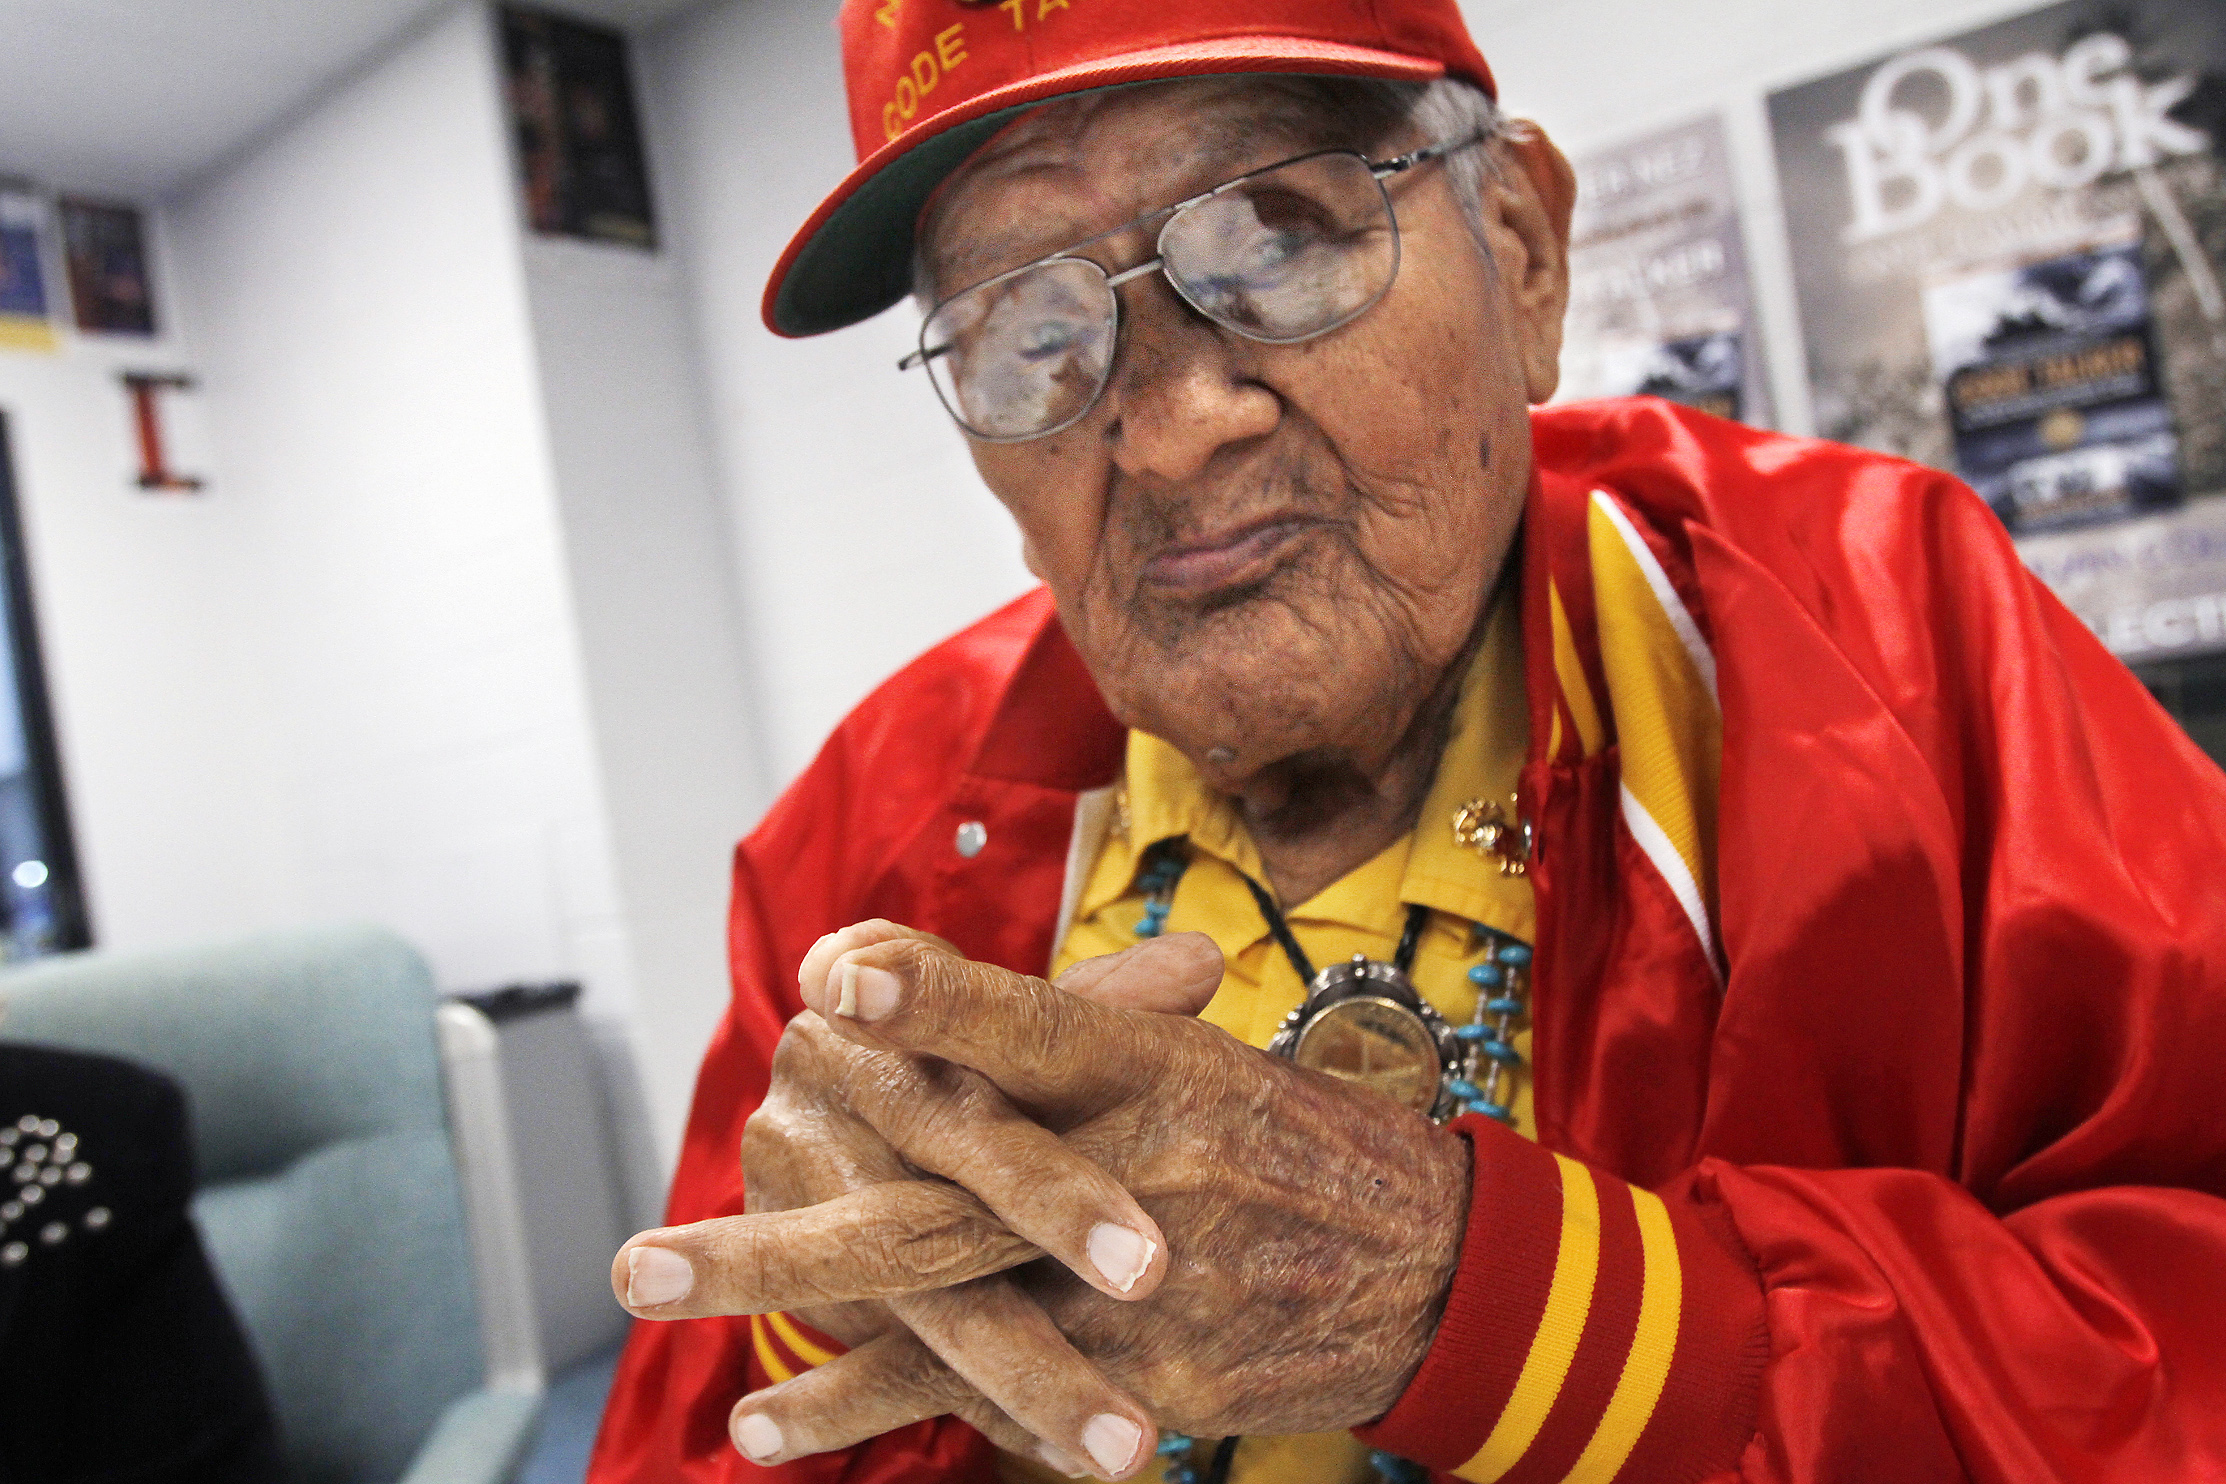 Navajo Code Talker Chester Nez waits backstage for a speaking engagement at the Henderson Fine Arts Center at San Juan College in Farmington N.M. on Nov. 1, 2012.